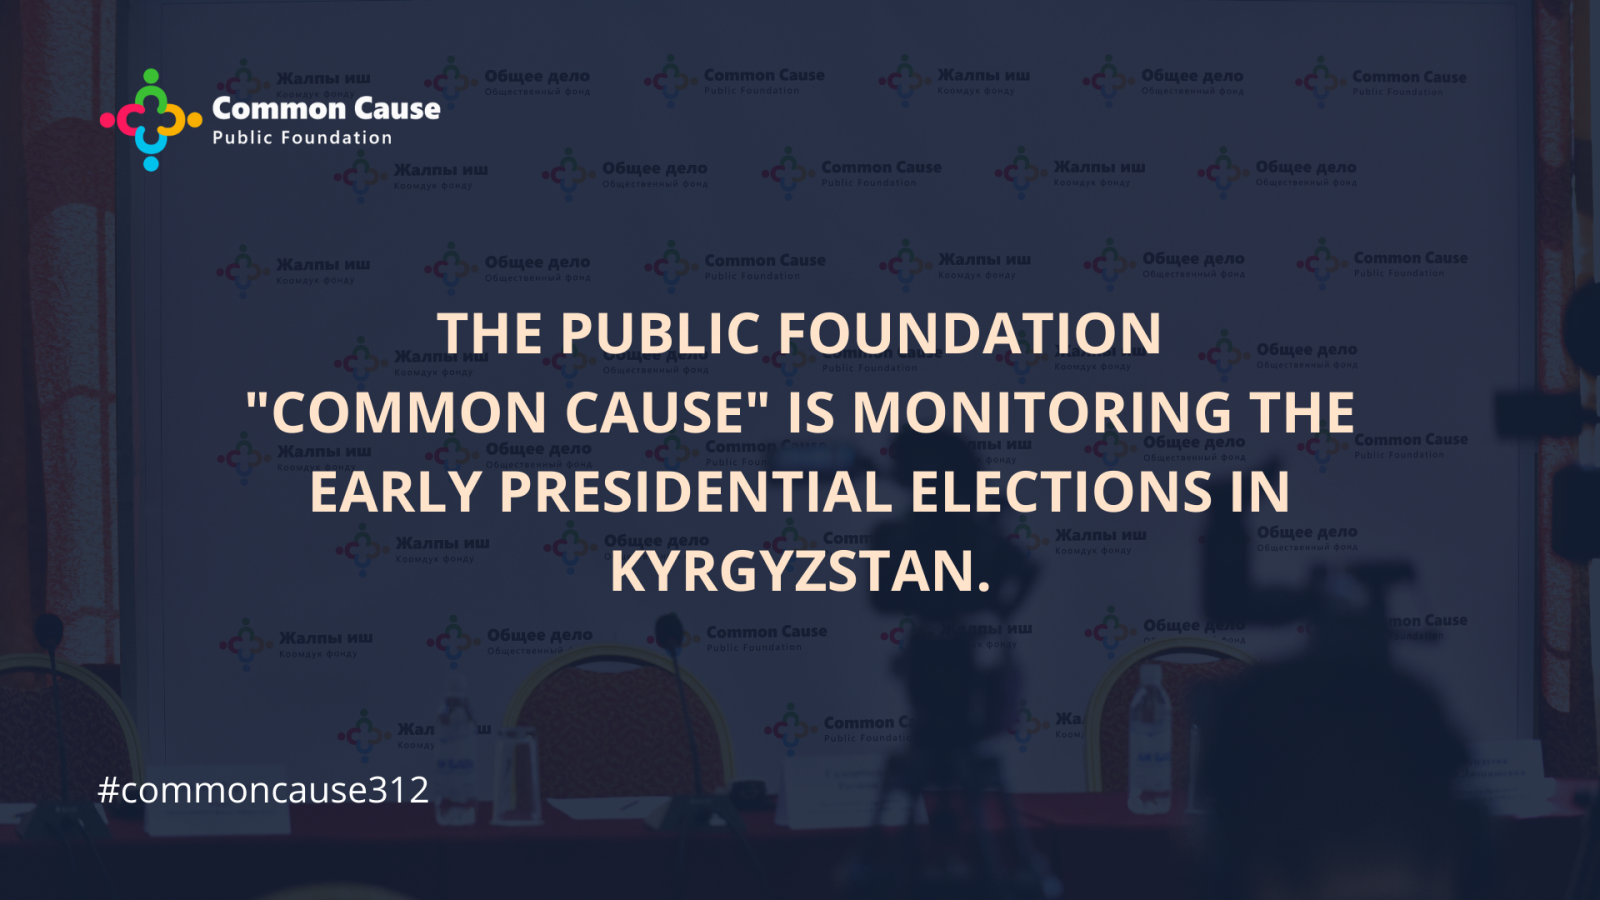 """The Public Foundation """"Common Cause"""" is monitoring the early presidential elections in Kyrgyzstan."""